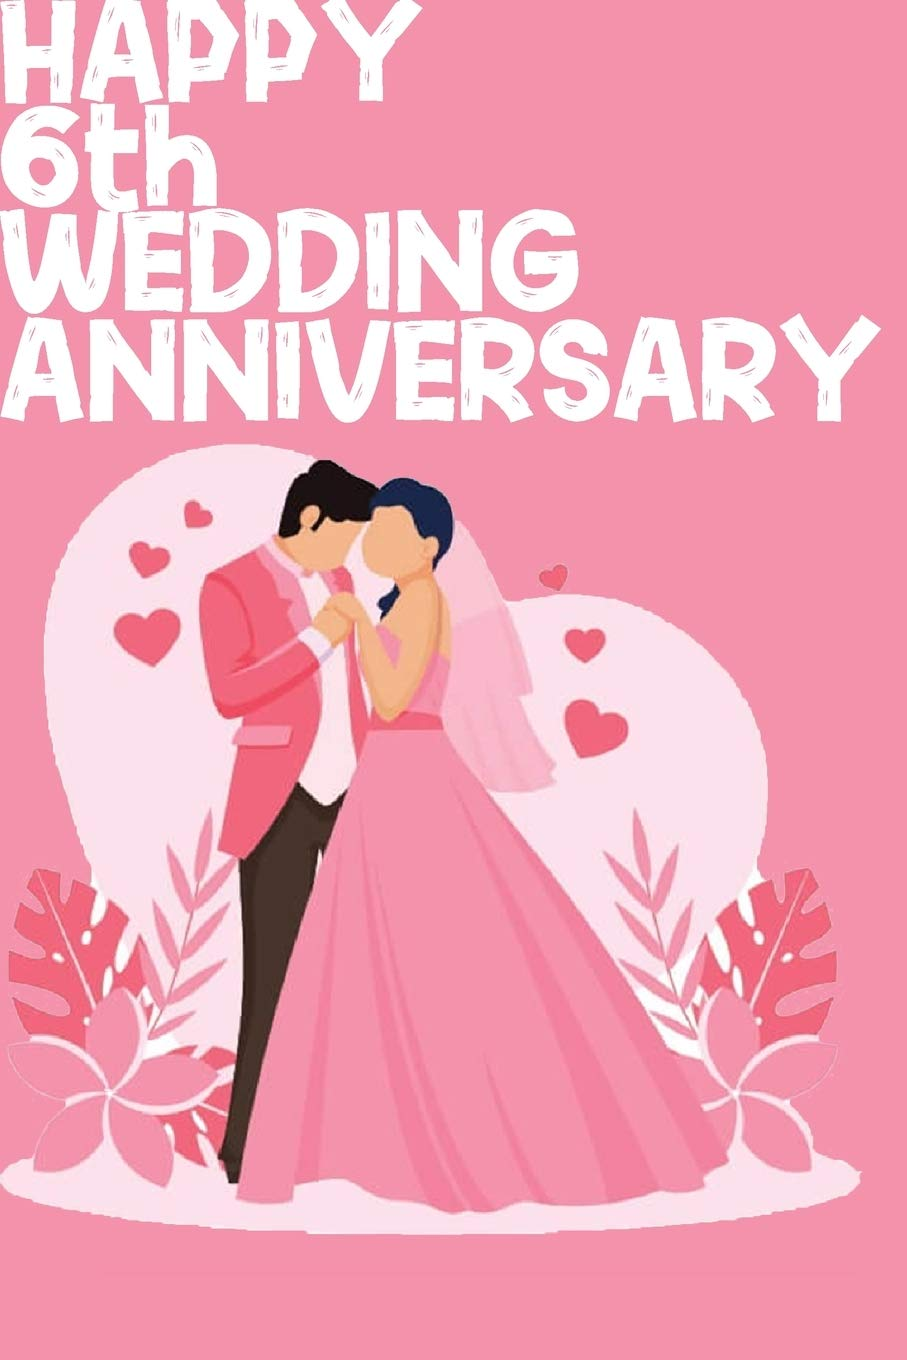 Buy Happy 6th Wedding Anniversary Notebook Gifts For Couples Book Online At Low Prices In India Happy 6th Wedding Anniversary Notebook Gifts For Couples Reviews Ratings Amazon In